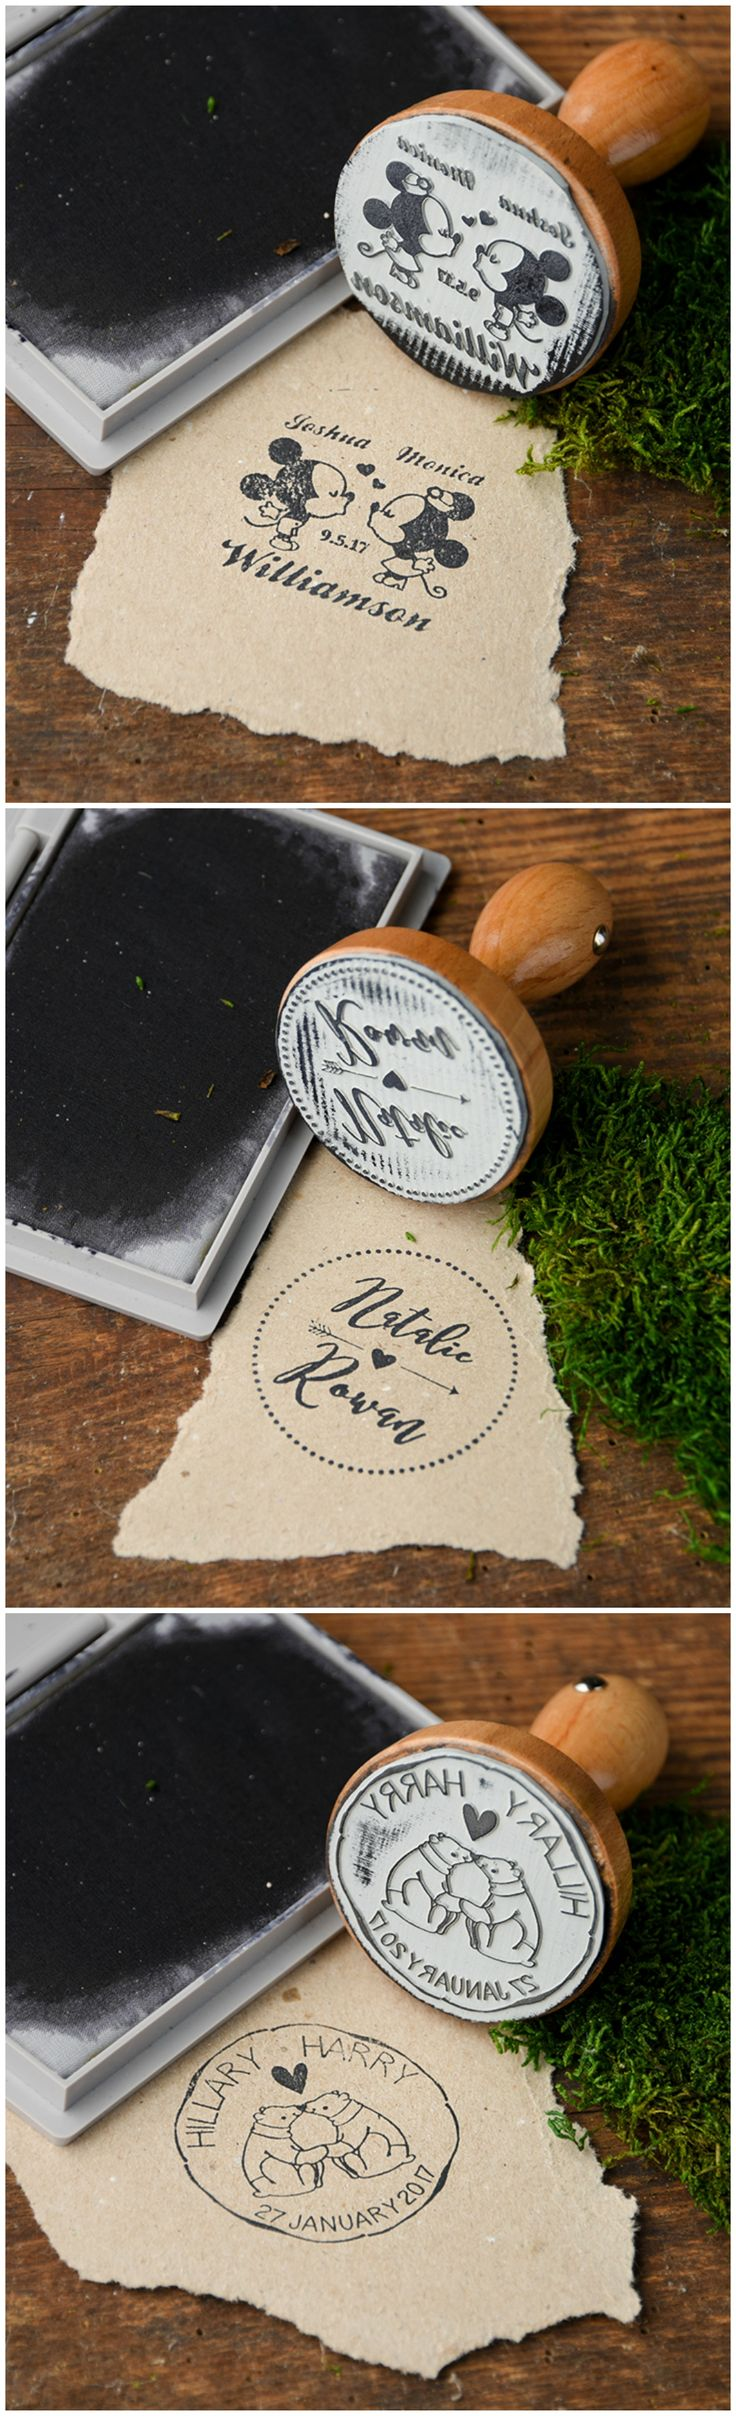 Wedding Custom Wooden Stamps #weddingideas #unique #rustic #custom #lovely #woodstamp #stamp  #newdesign #musthave